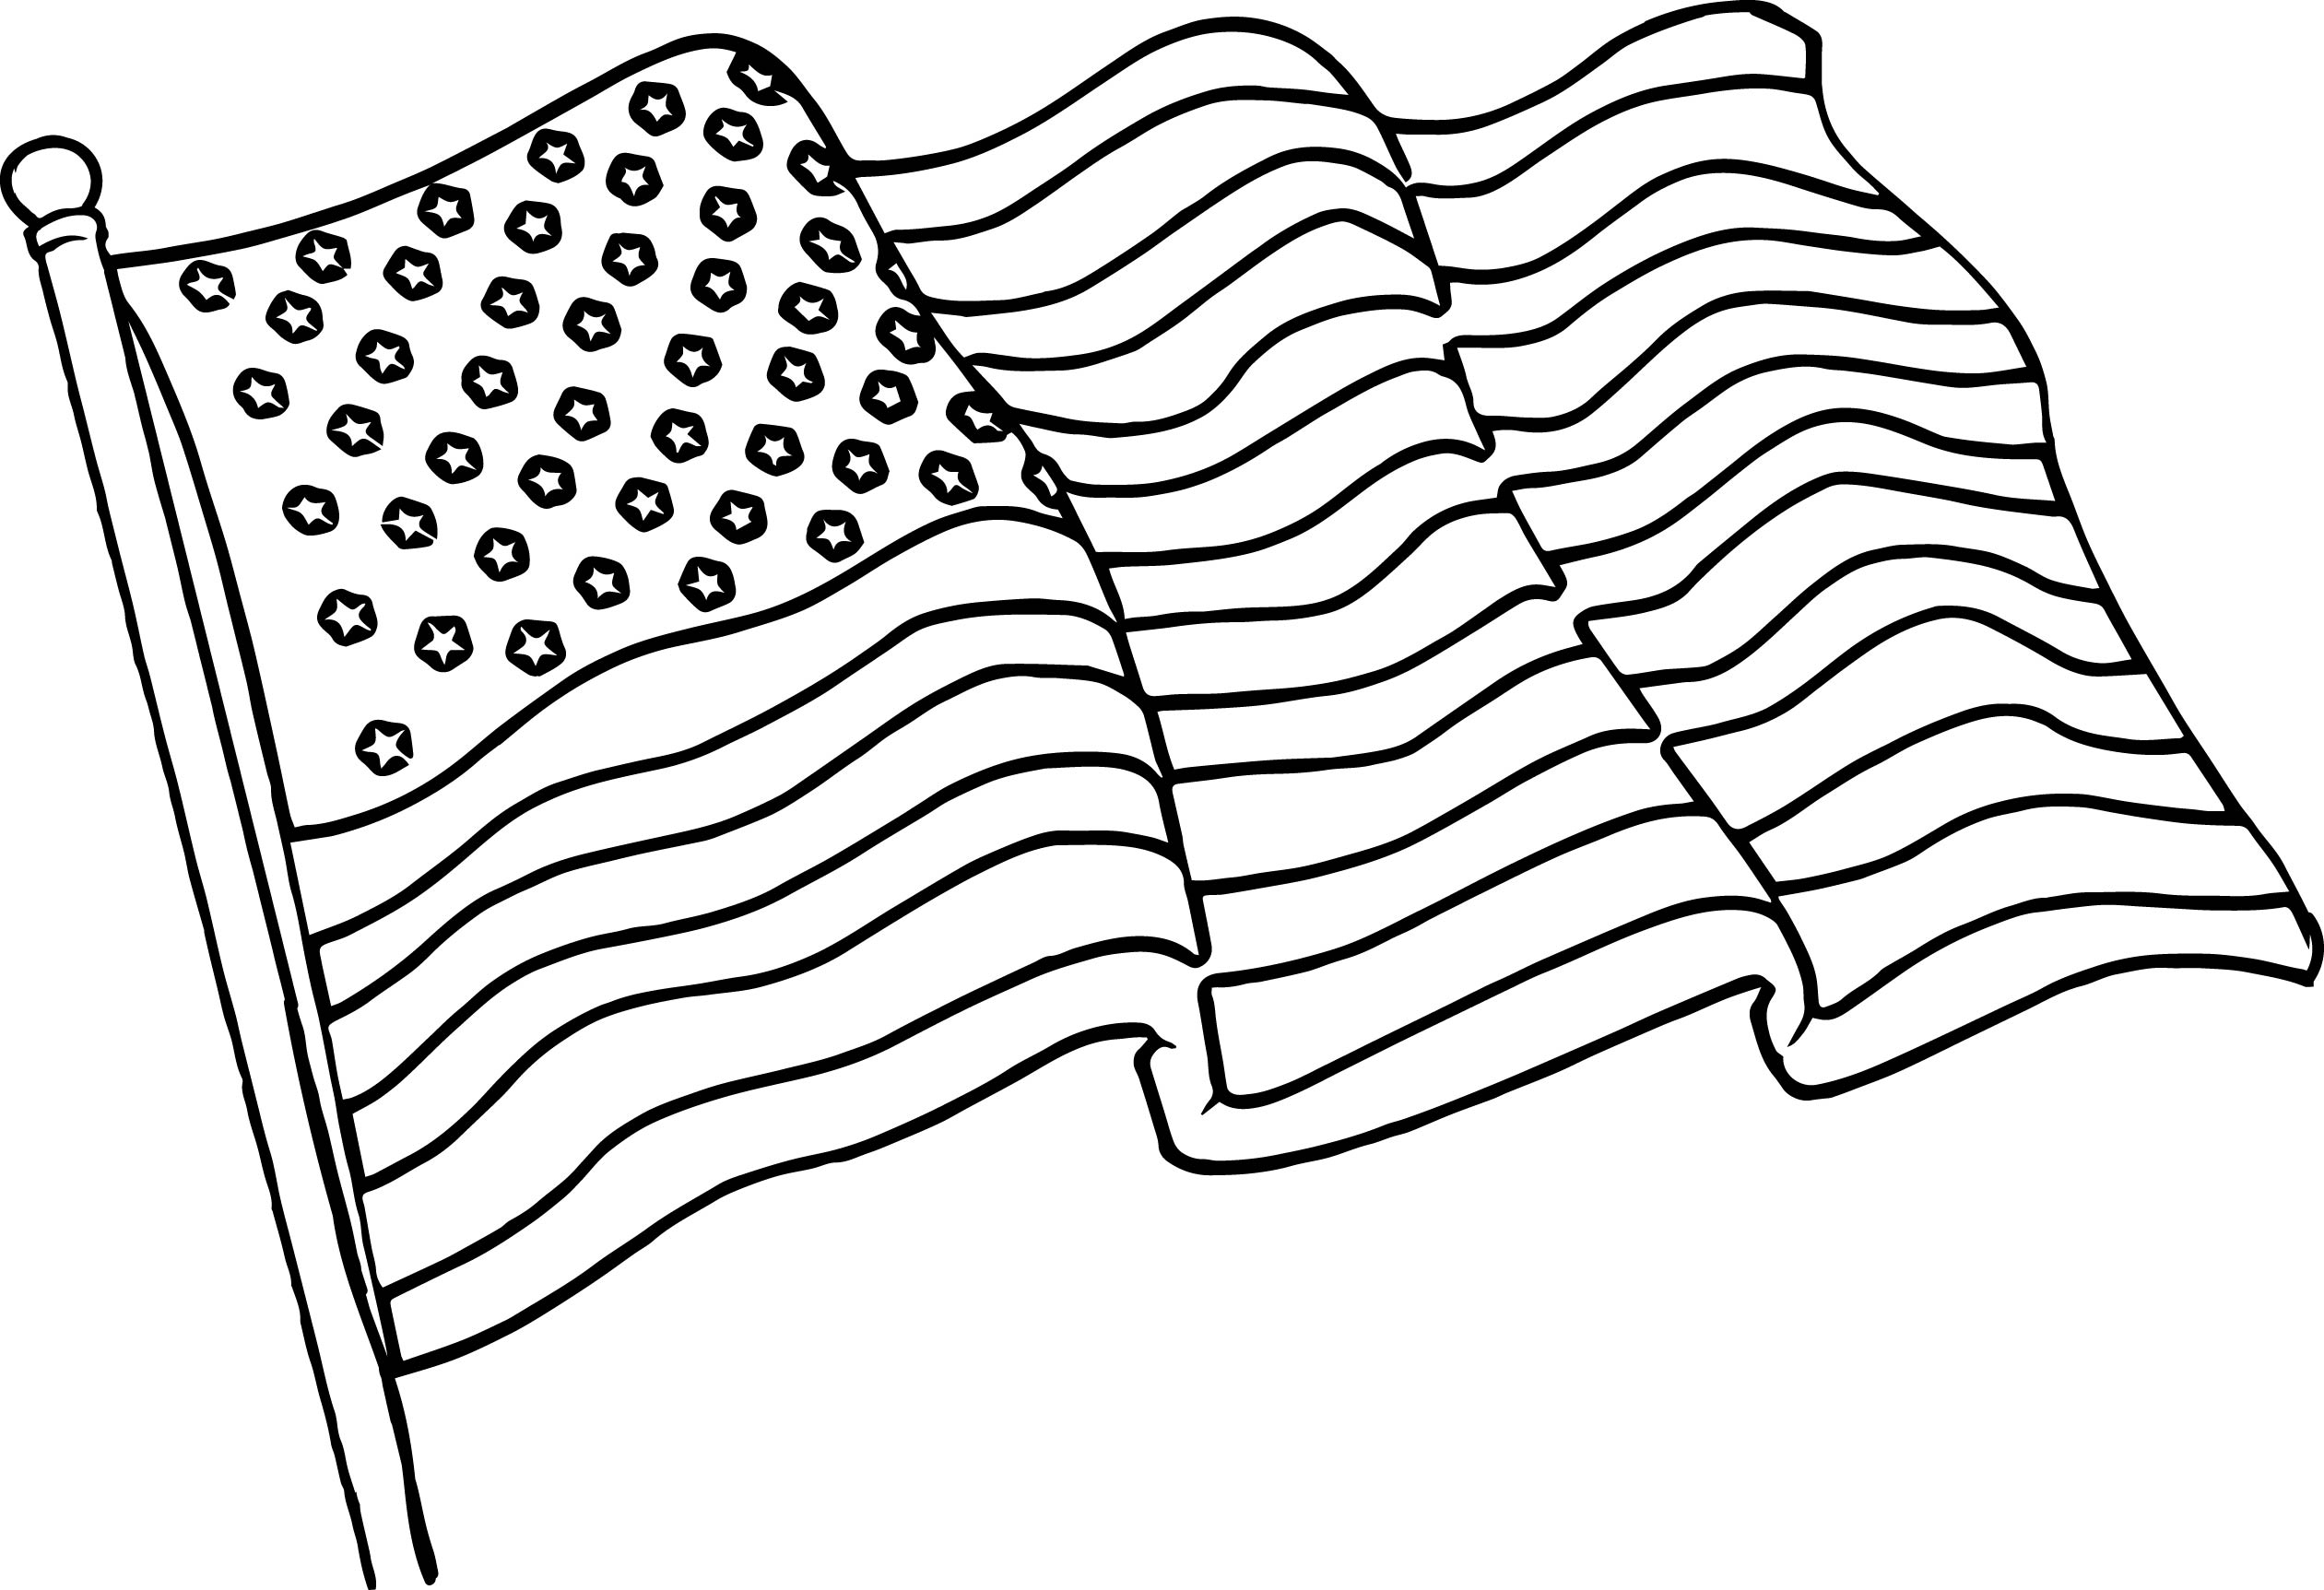 coloring sheet american flag coloring page american flag coloring pages best coloring pages for kids flag page coloring sheet american coloring